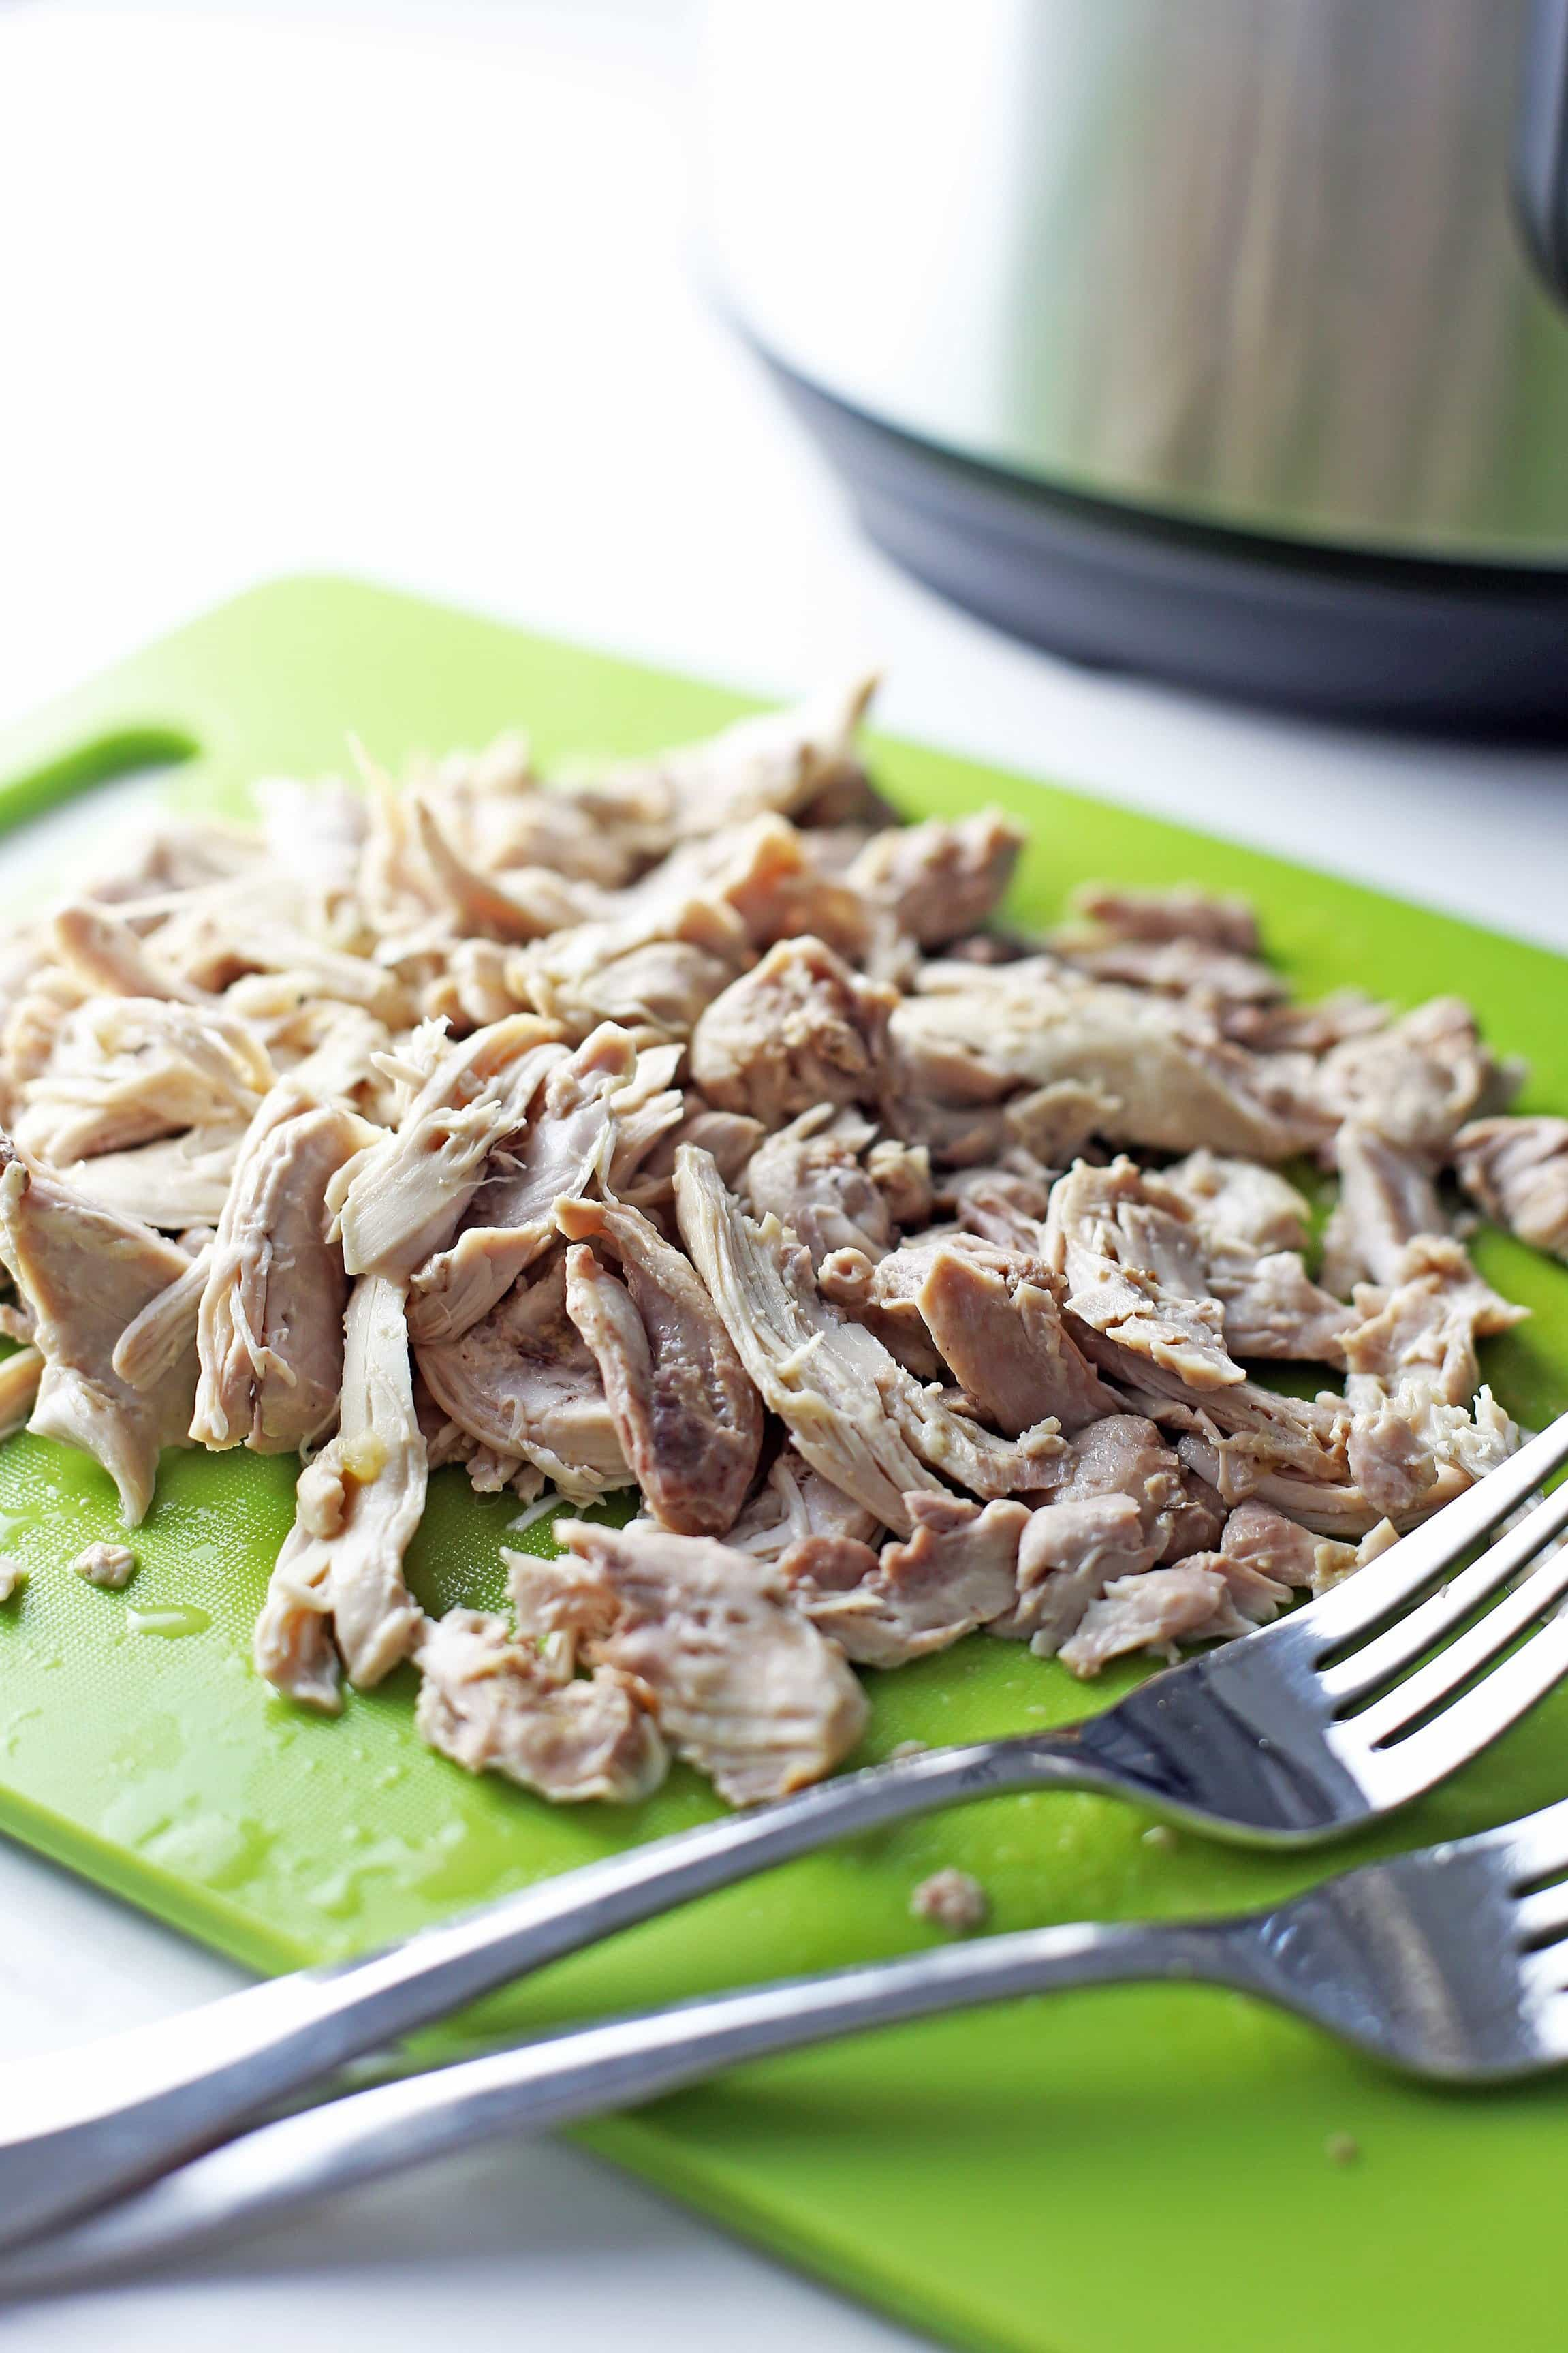 Shredded chicken thighs with two forks on top of green plastic cutting board.